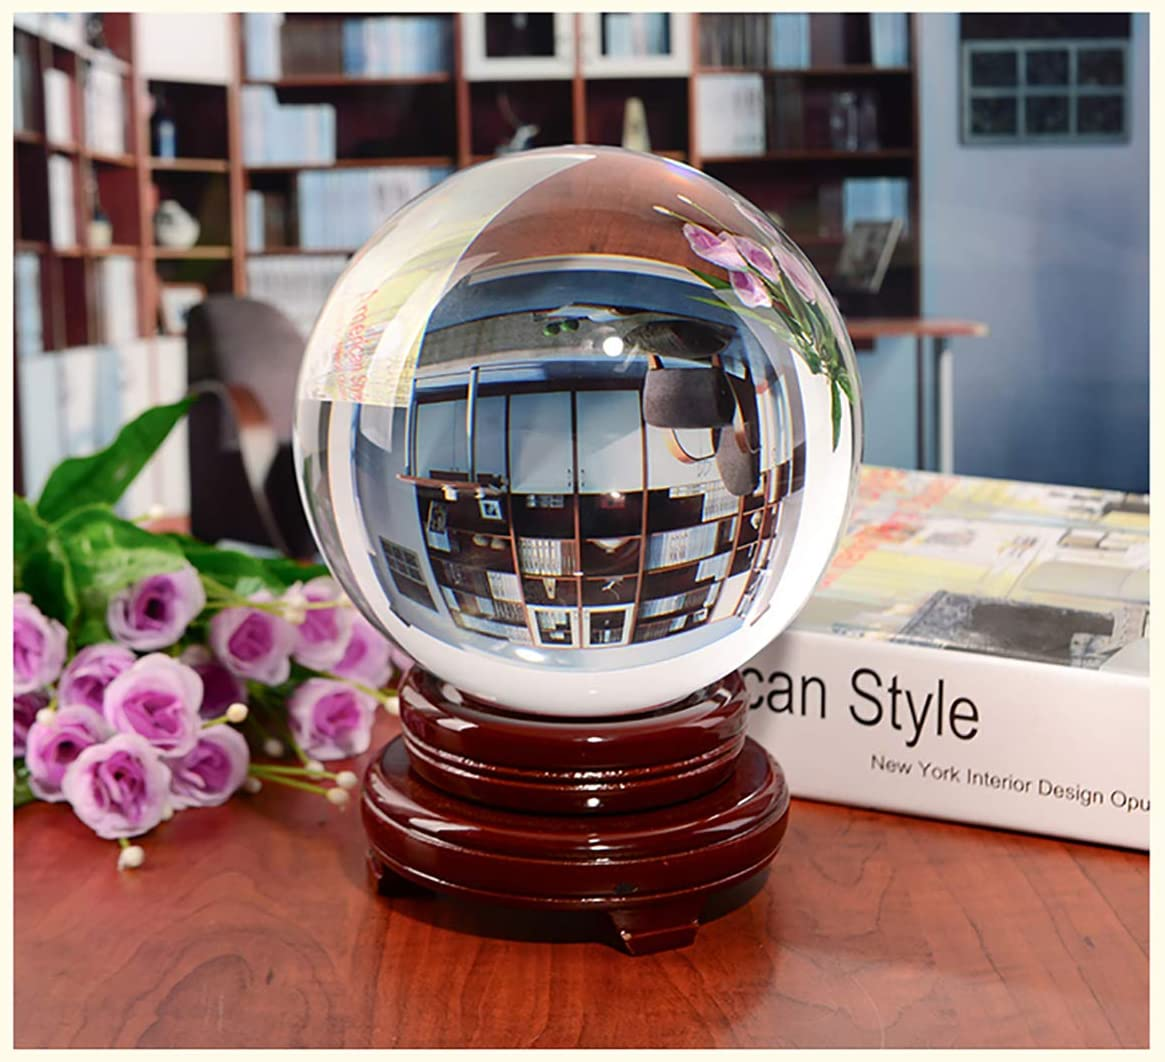 MerryNine MerryNine Photograph Lens Ball with Stand and Pouch 110mm//4.33 with Wooden Stand for Decorative and Photography K9 Photography Crystal Ball